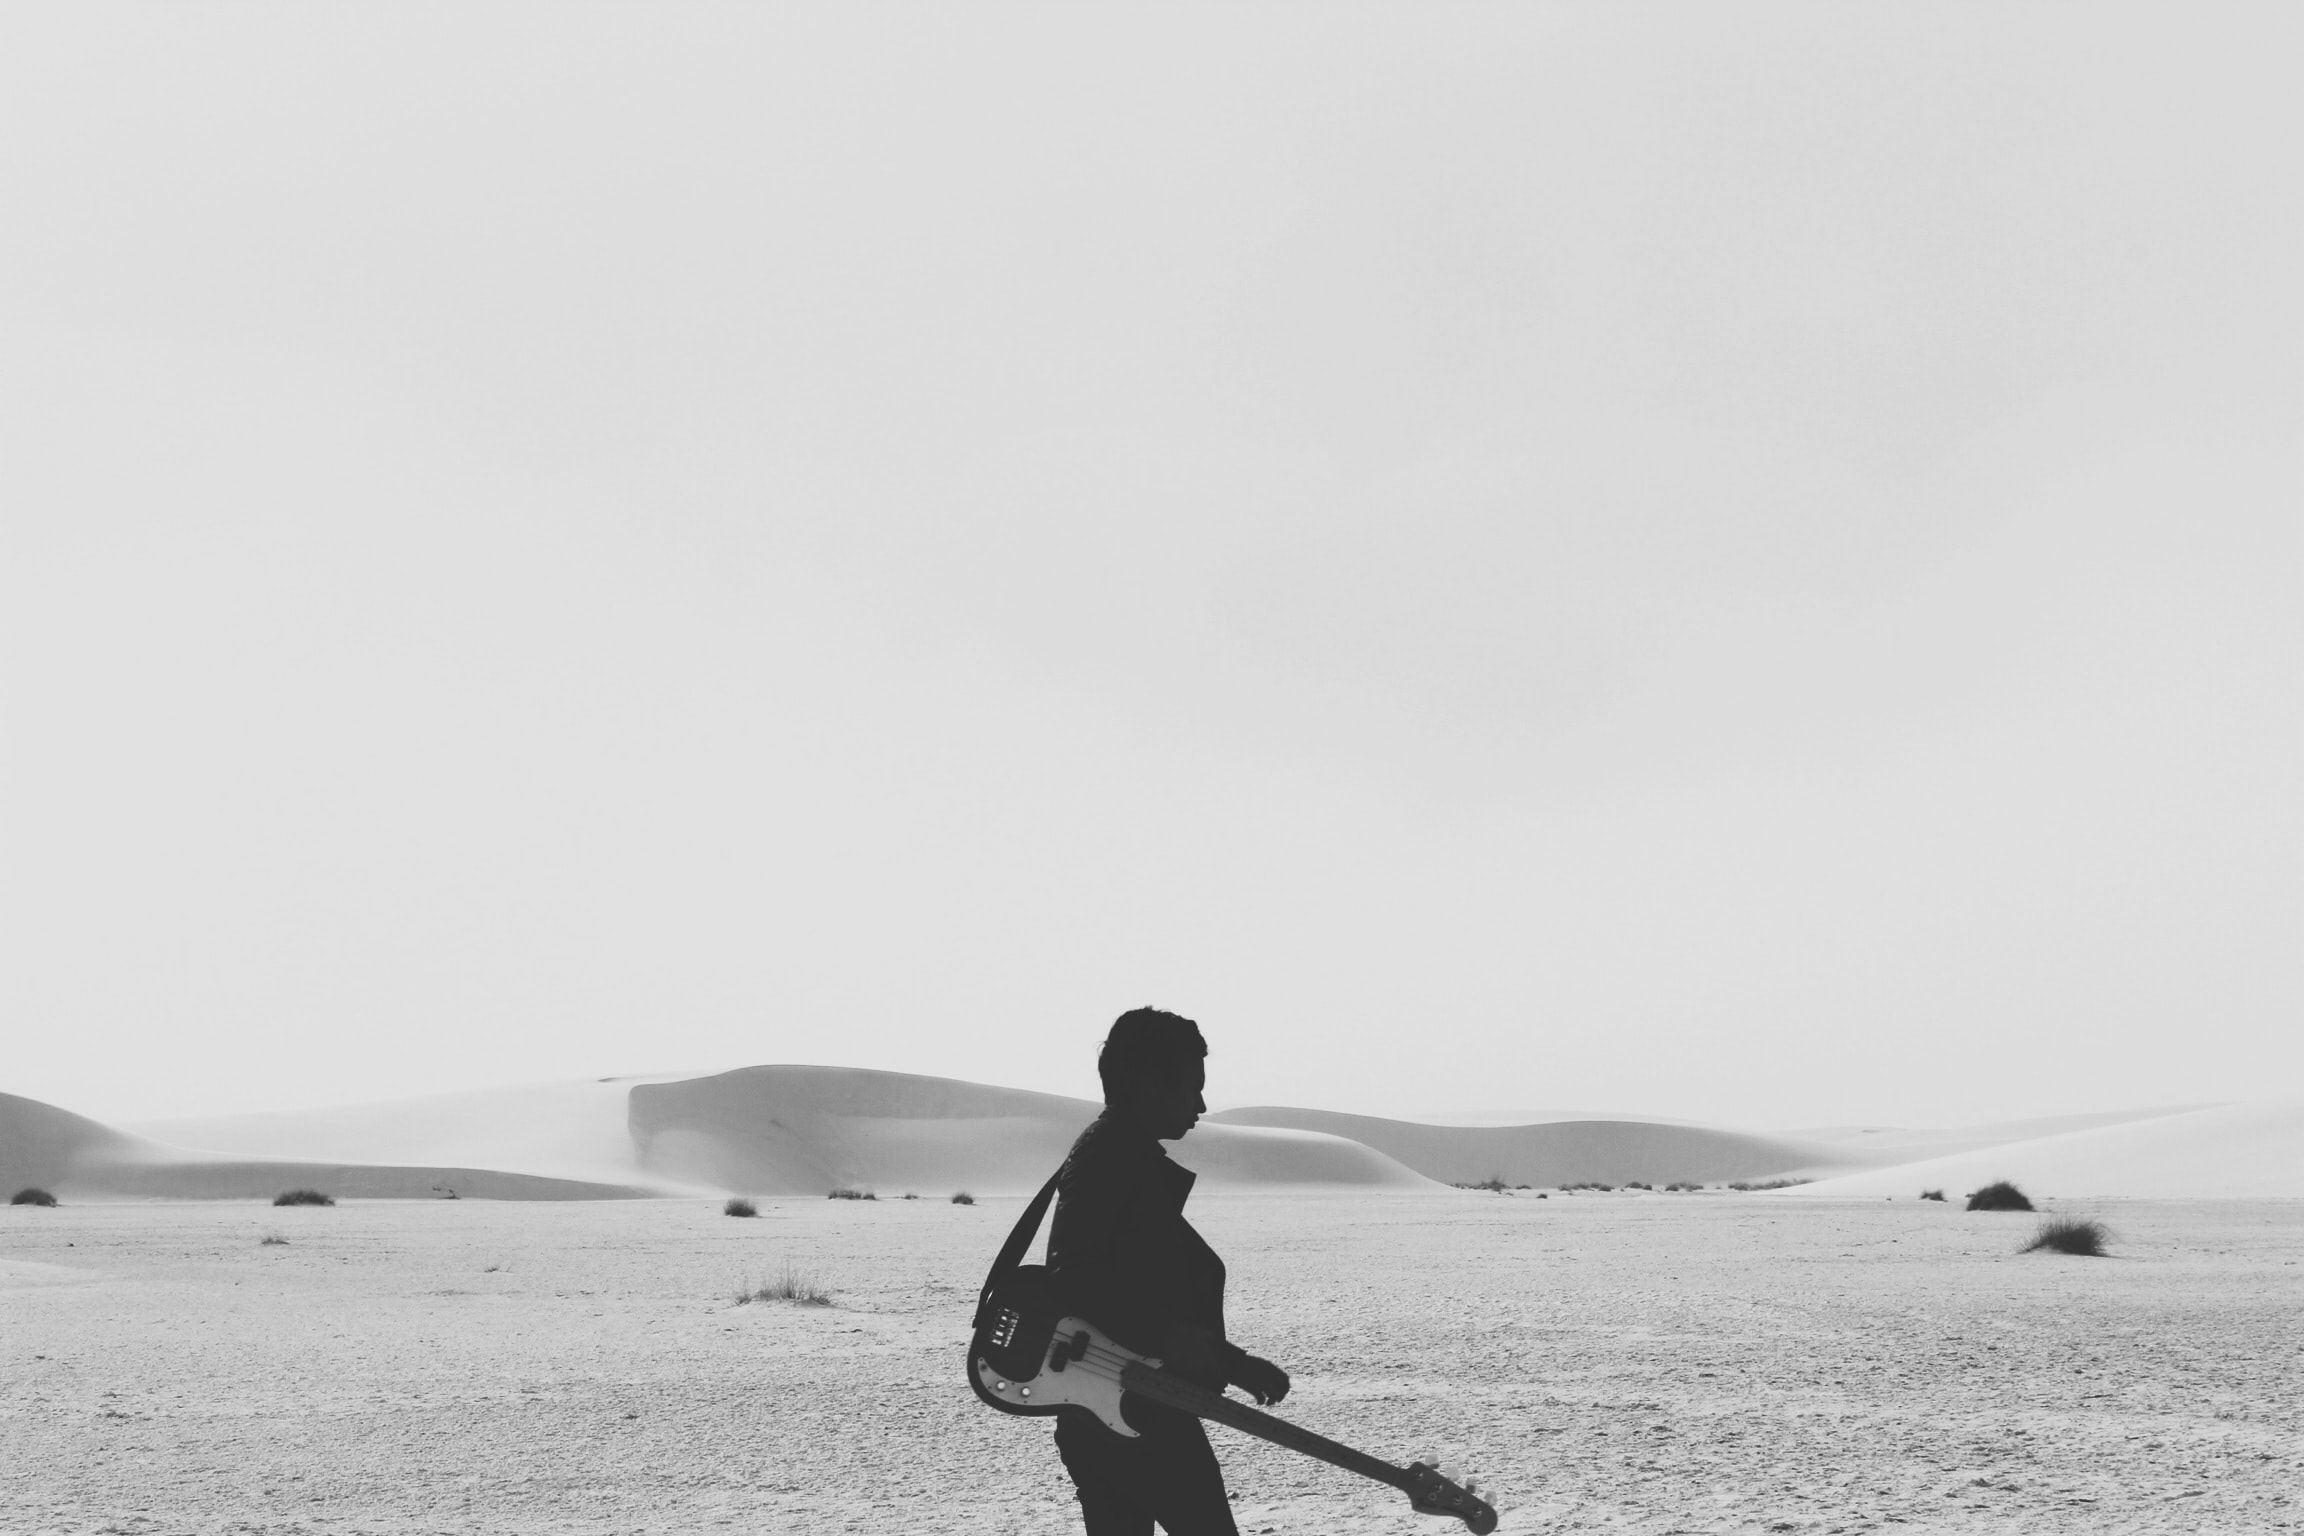 silhouette of person with guitar